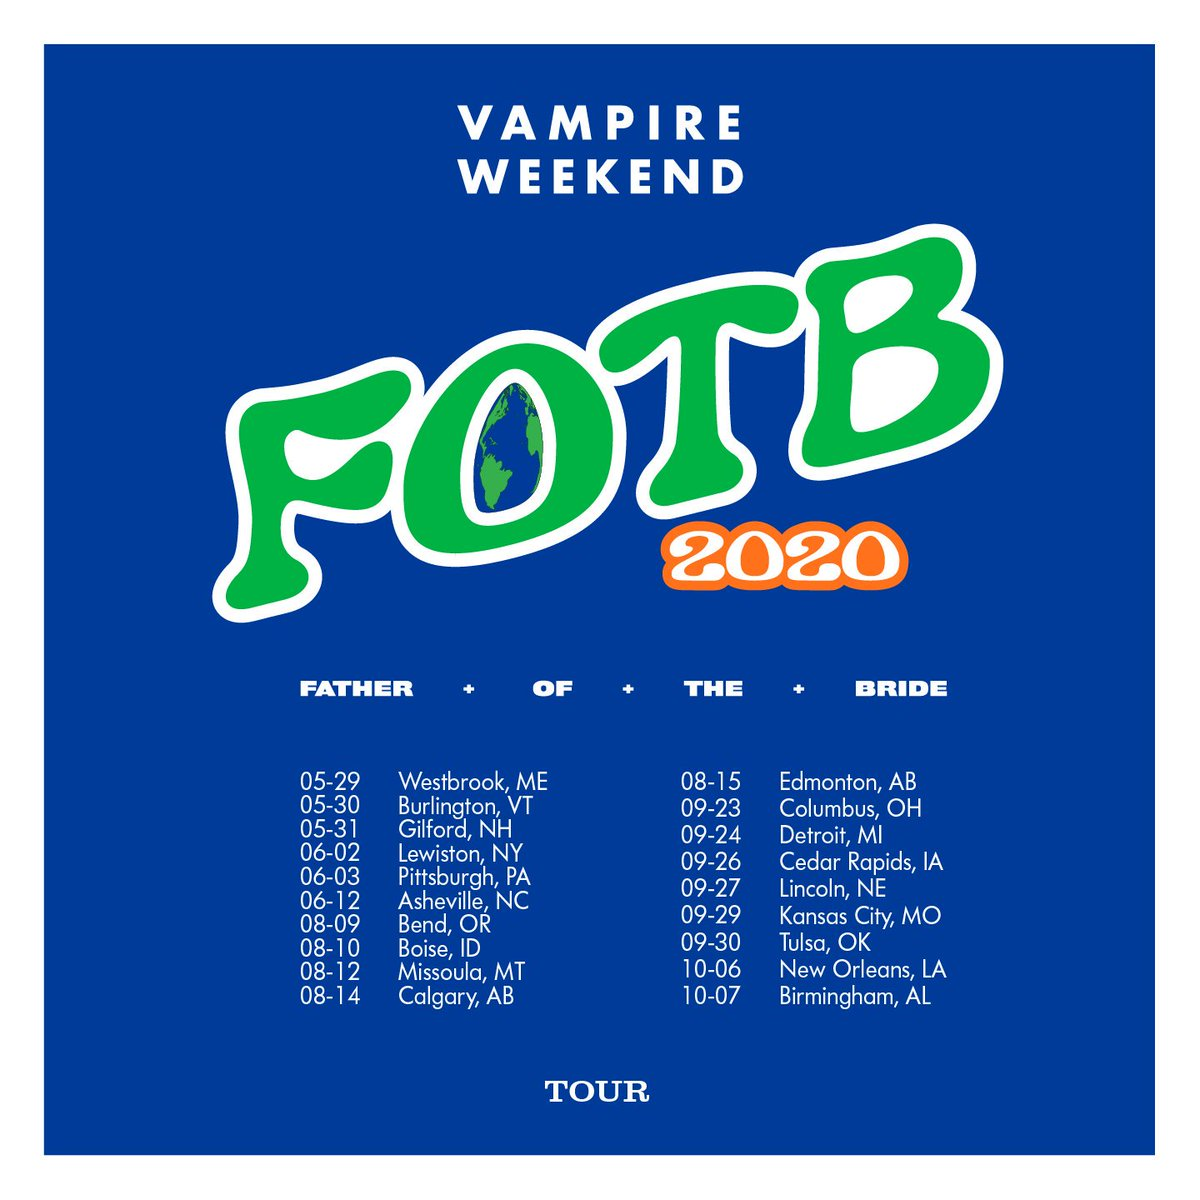 New FOTB dates have been added for 2020. Presales start Wednesday at 10am. VampireWeekend.com